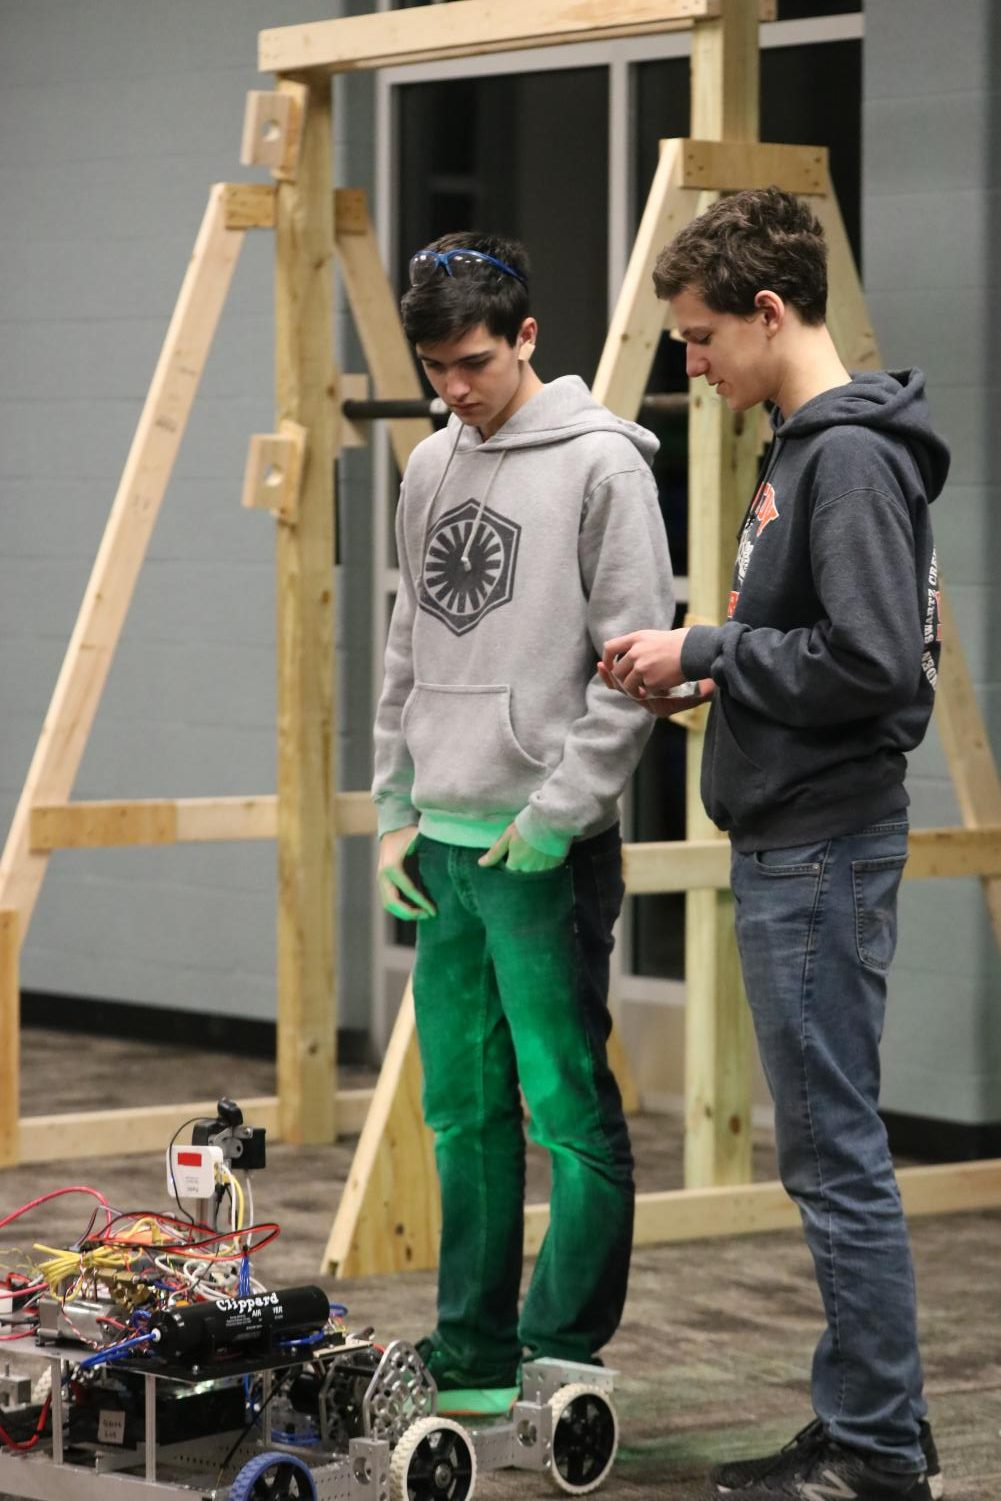 Junior Shawn DeFina and freshman Luke DeFina, members of the robotics team, work on their robot to prepare for their competition. The robotics team met on Jan. 16.